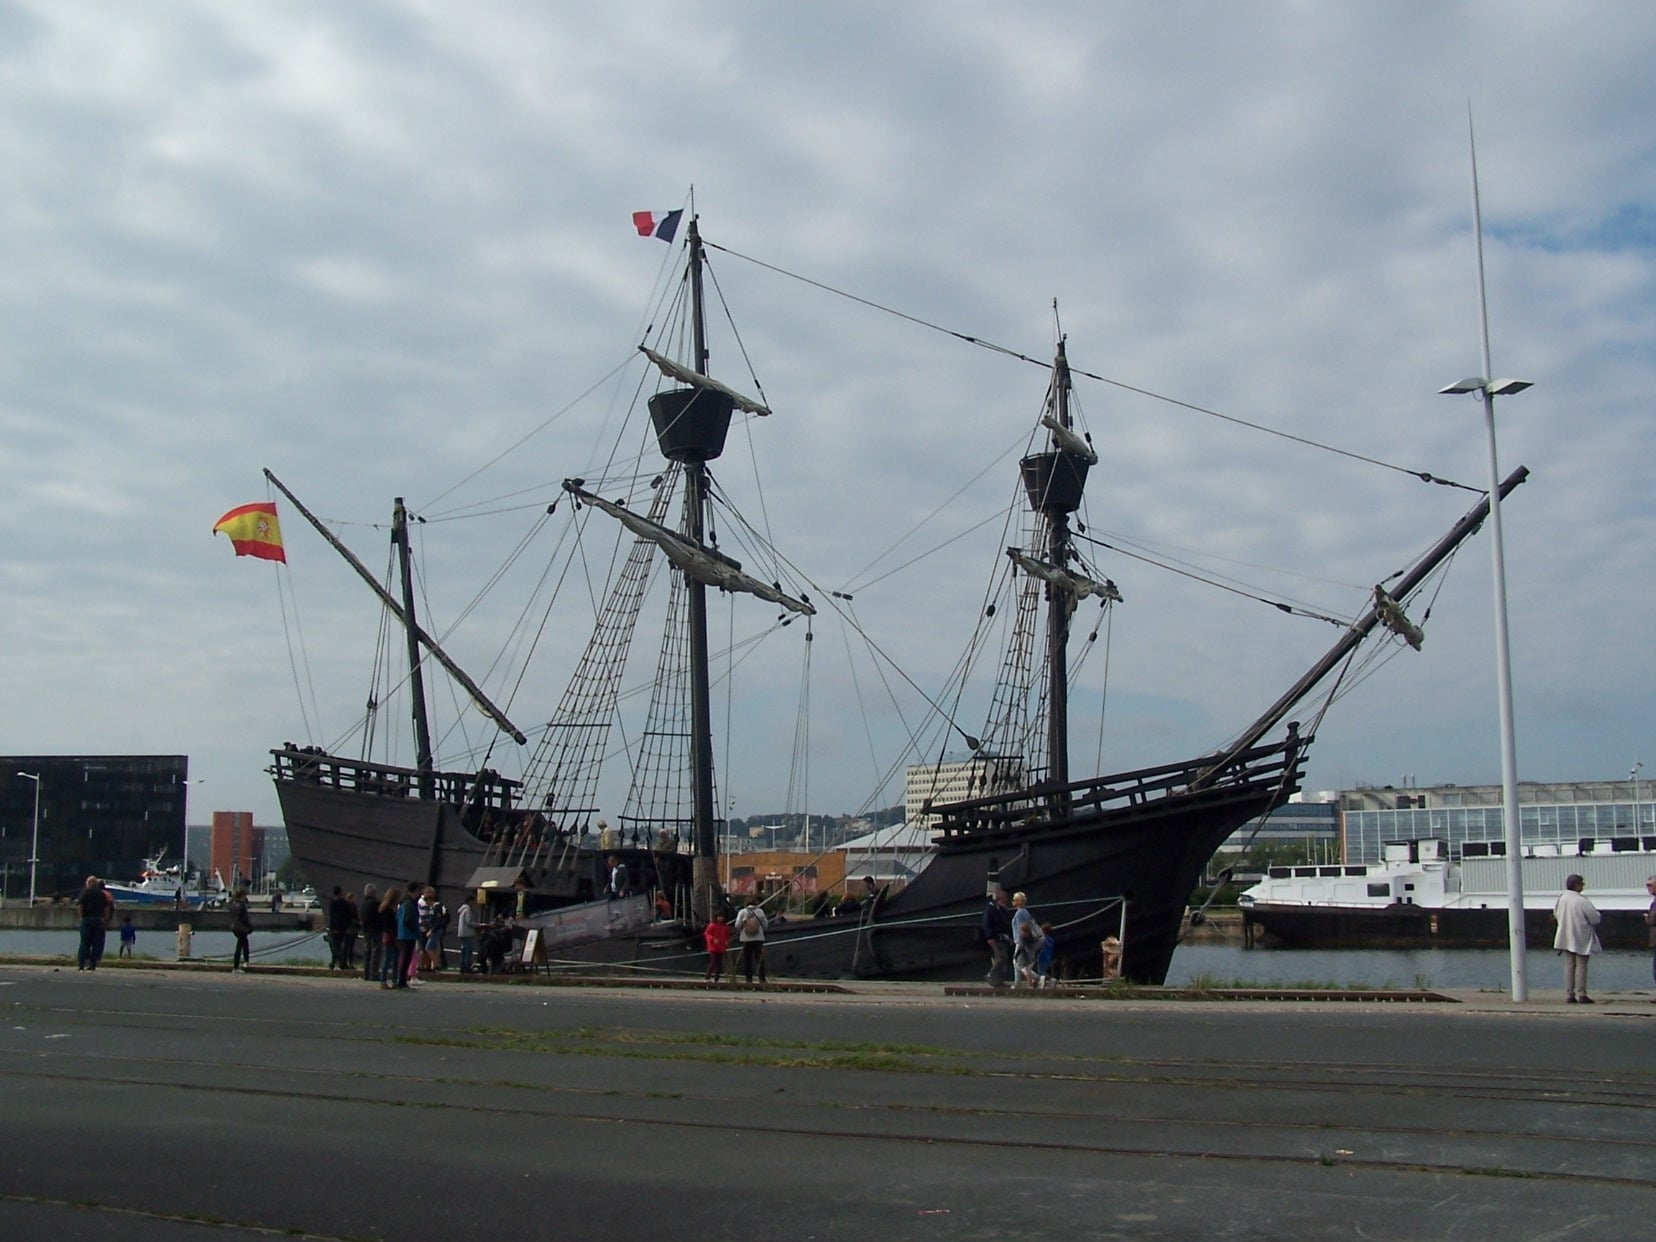 Magellan 's ship Nao-Victoria-at-Quai-de-la-Réunion Le Havre France